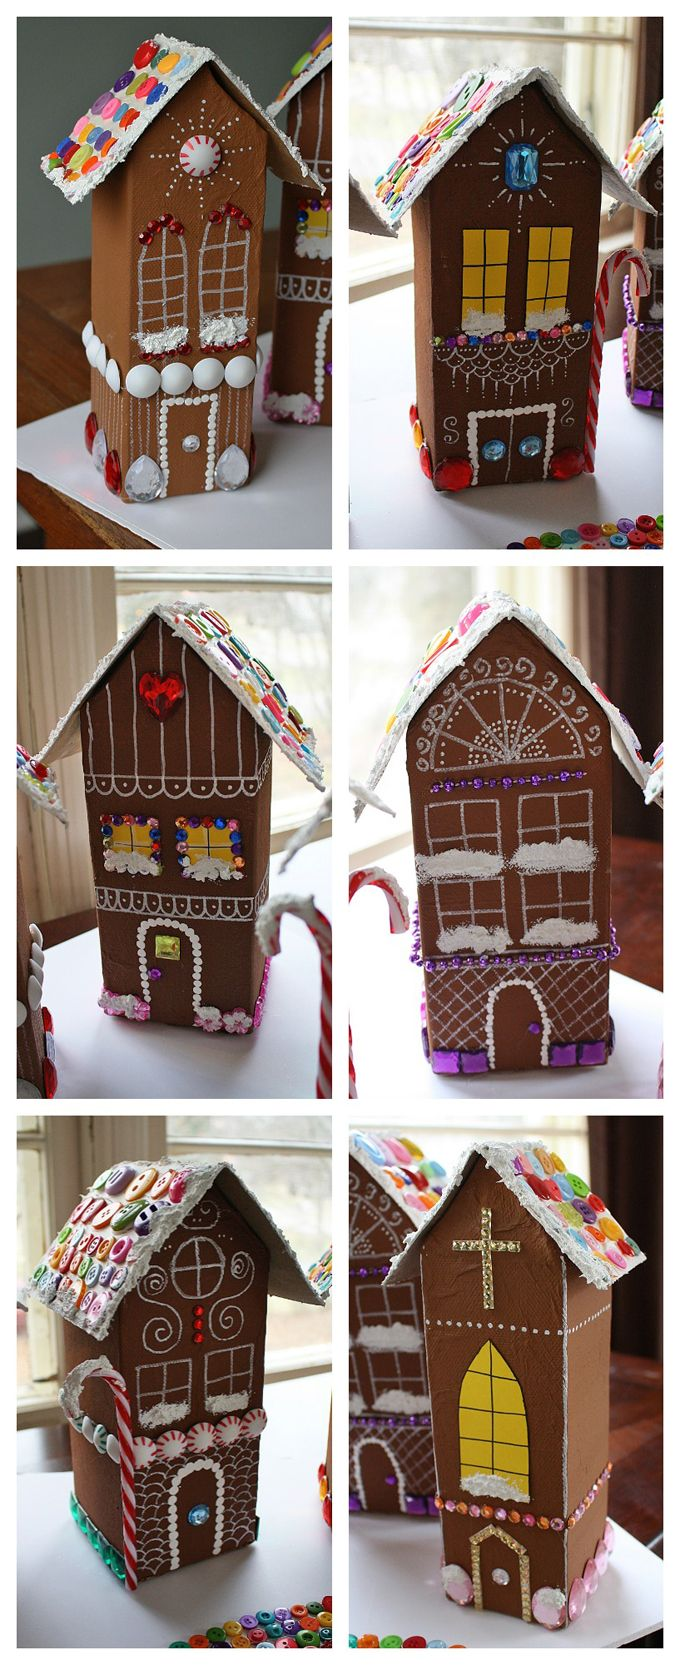 Love, Love, LOVE the way these look!! Recycled Village of Gingerbread Houses by Amanda Formaro of Crafts by Amanda